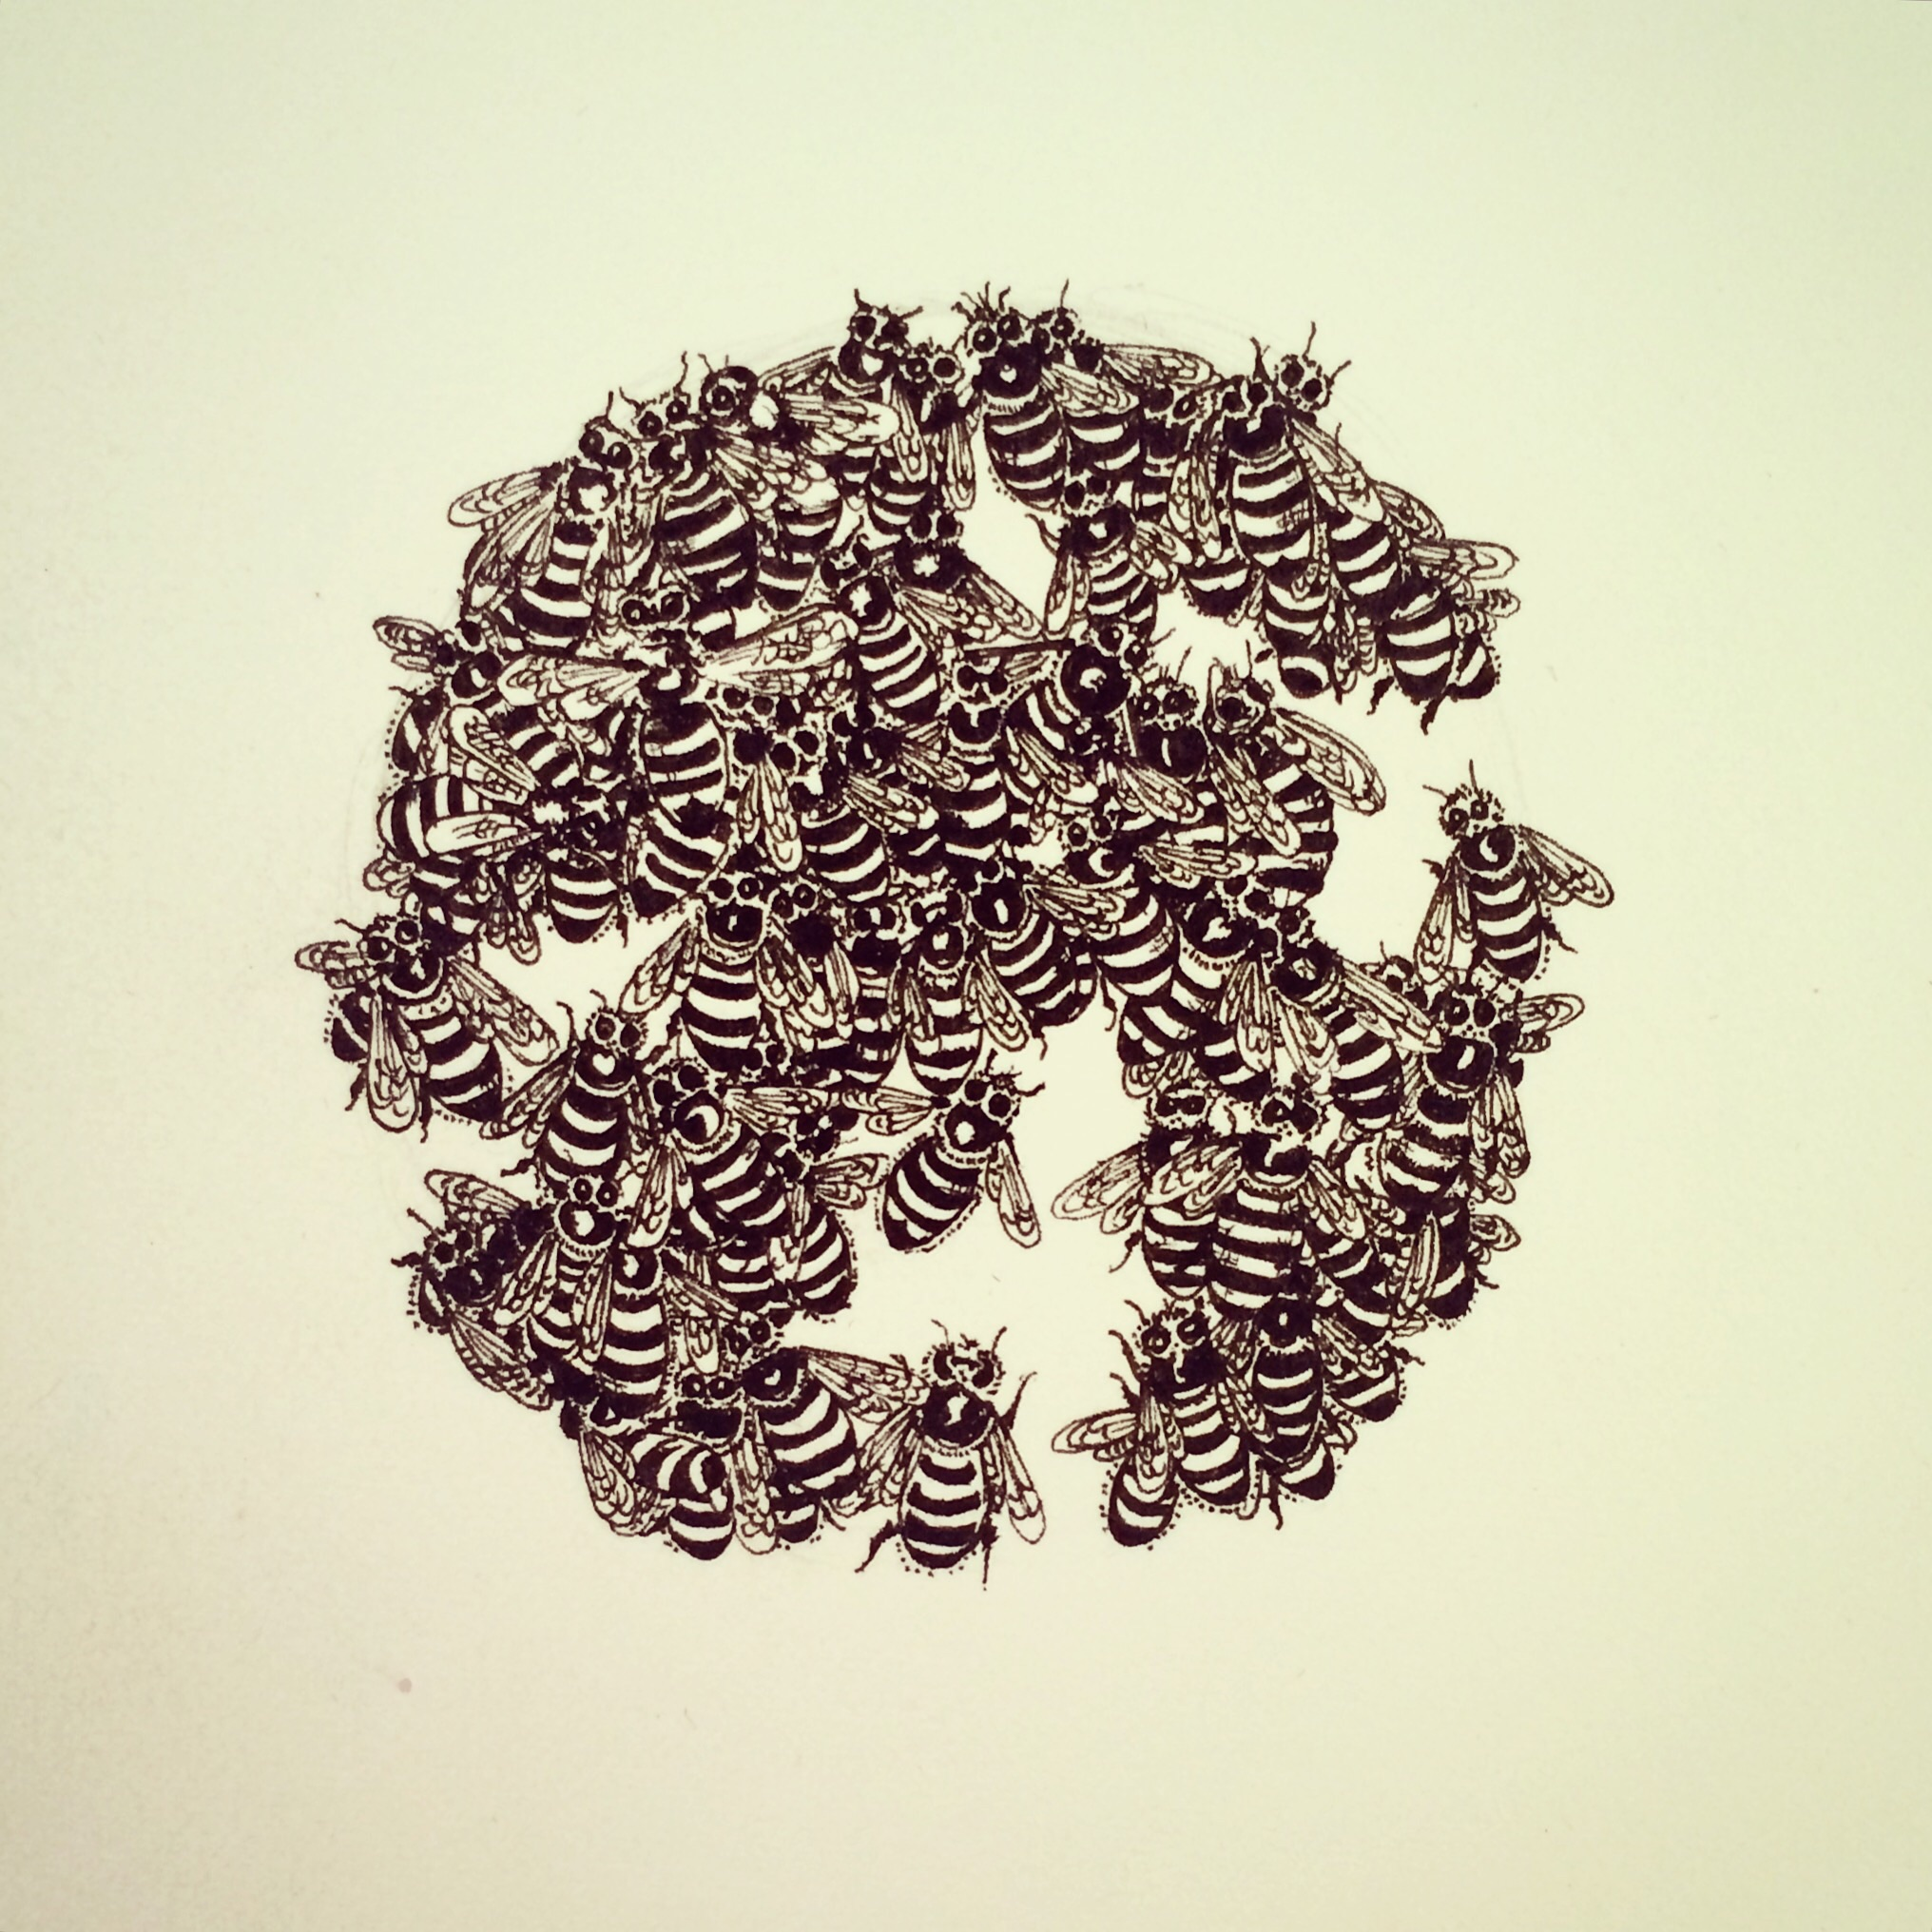 Becoming . Ink Drawing of a Honeybee Swarm by Crystal Hartman  *Prints Available early April, 2015  Image Copyright Crystal Hartman, 2015